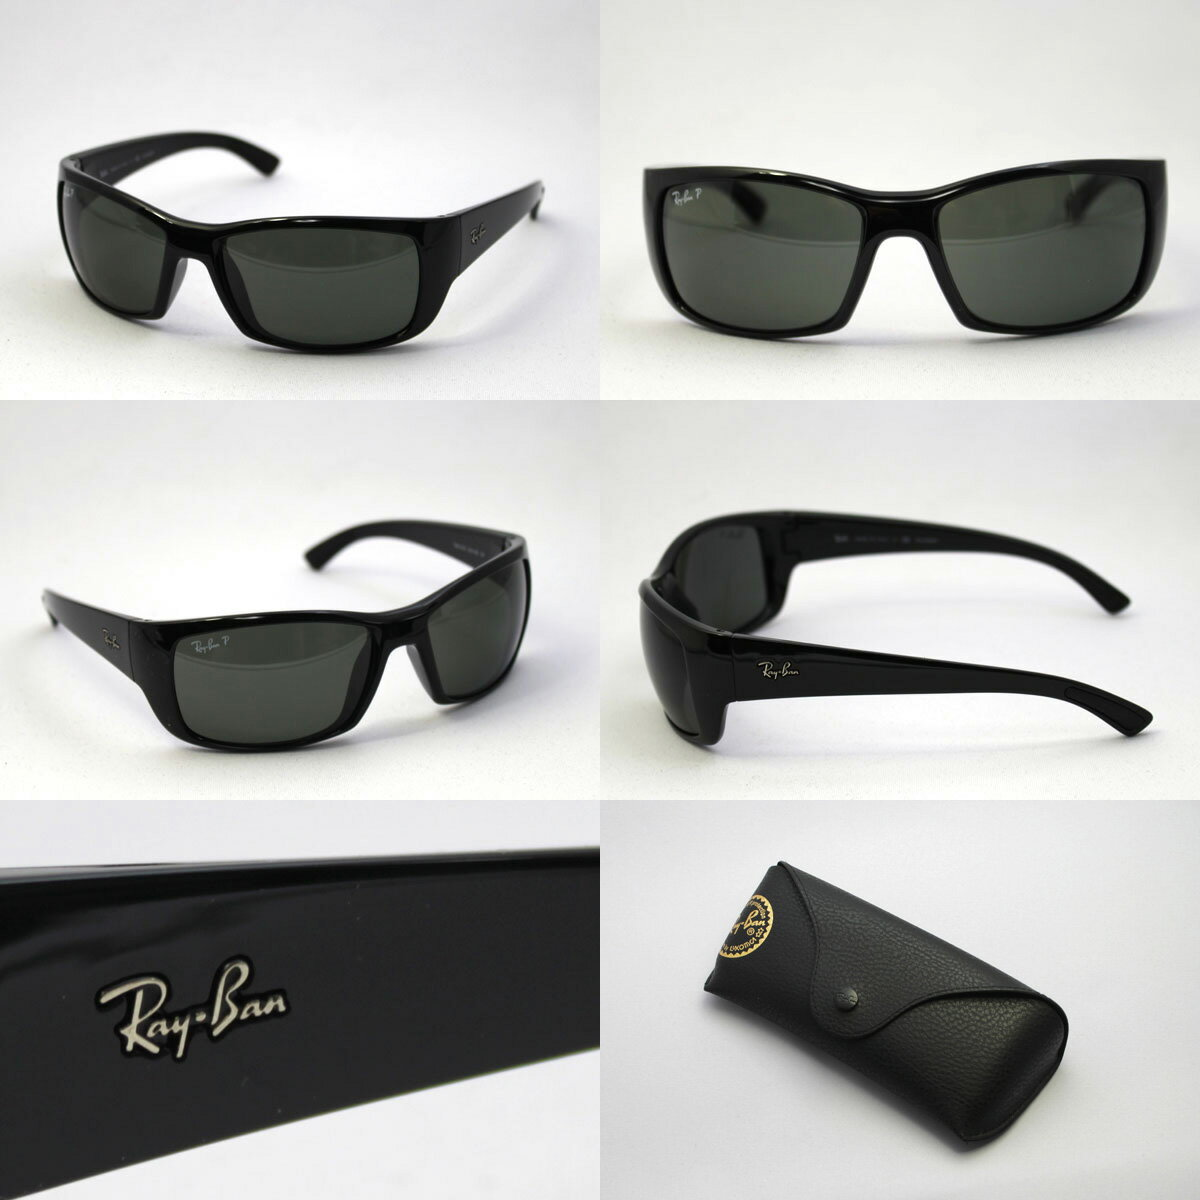 Shop all official Ray-Ban® Sunglasses at the Ray-Ban® India online store. Free shipping on all orders!